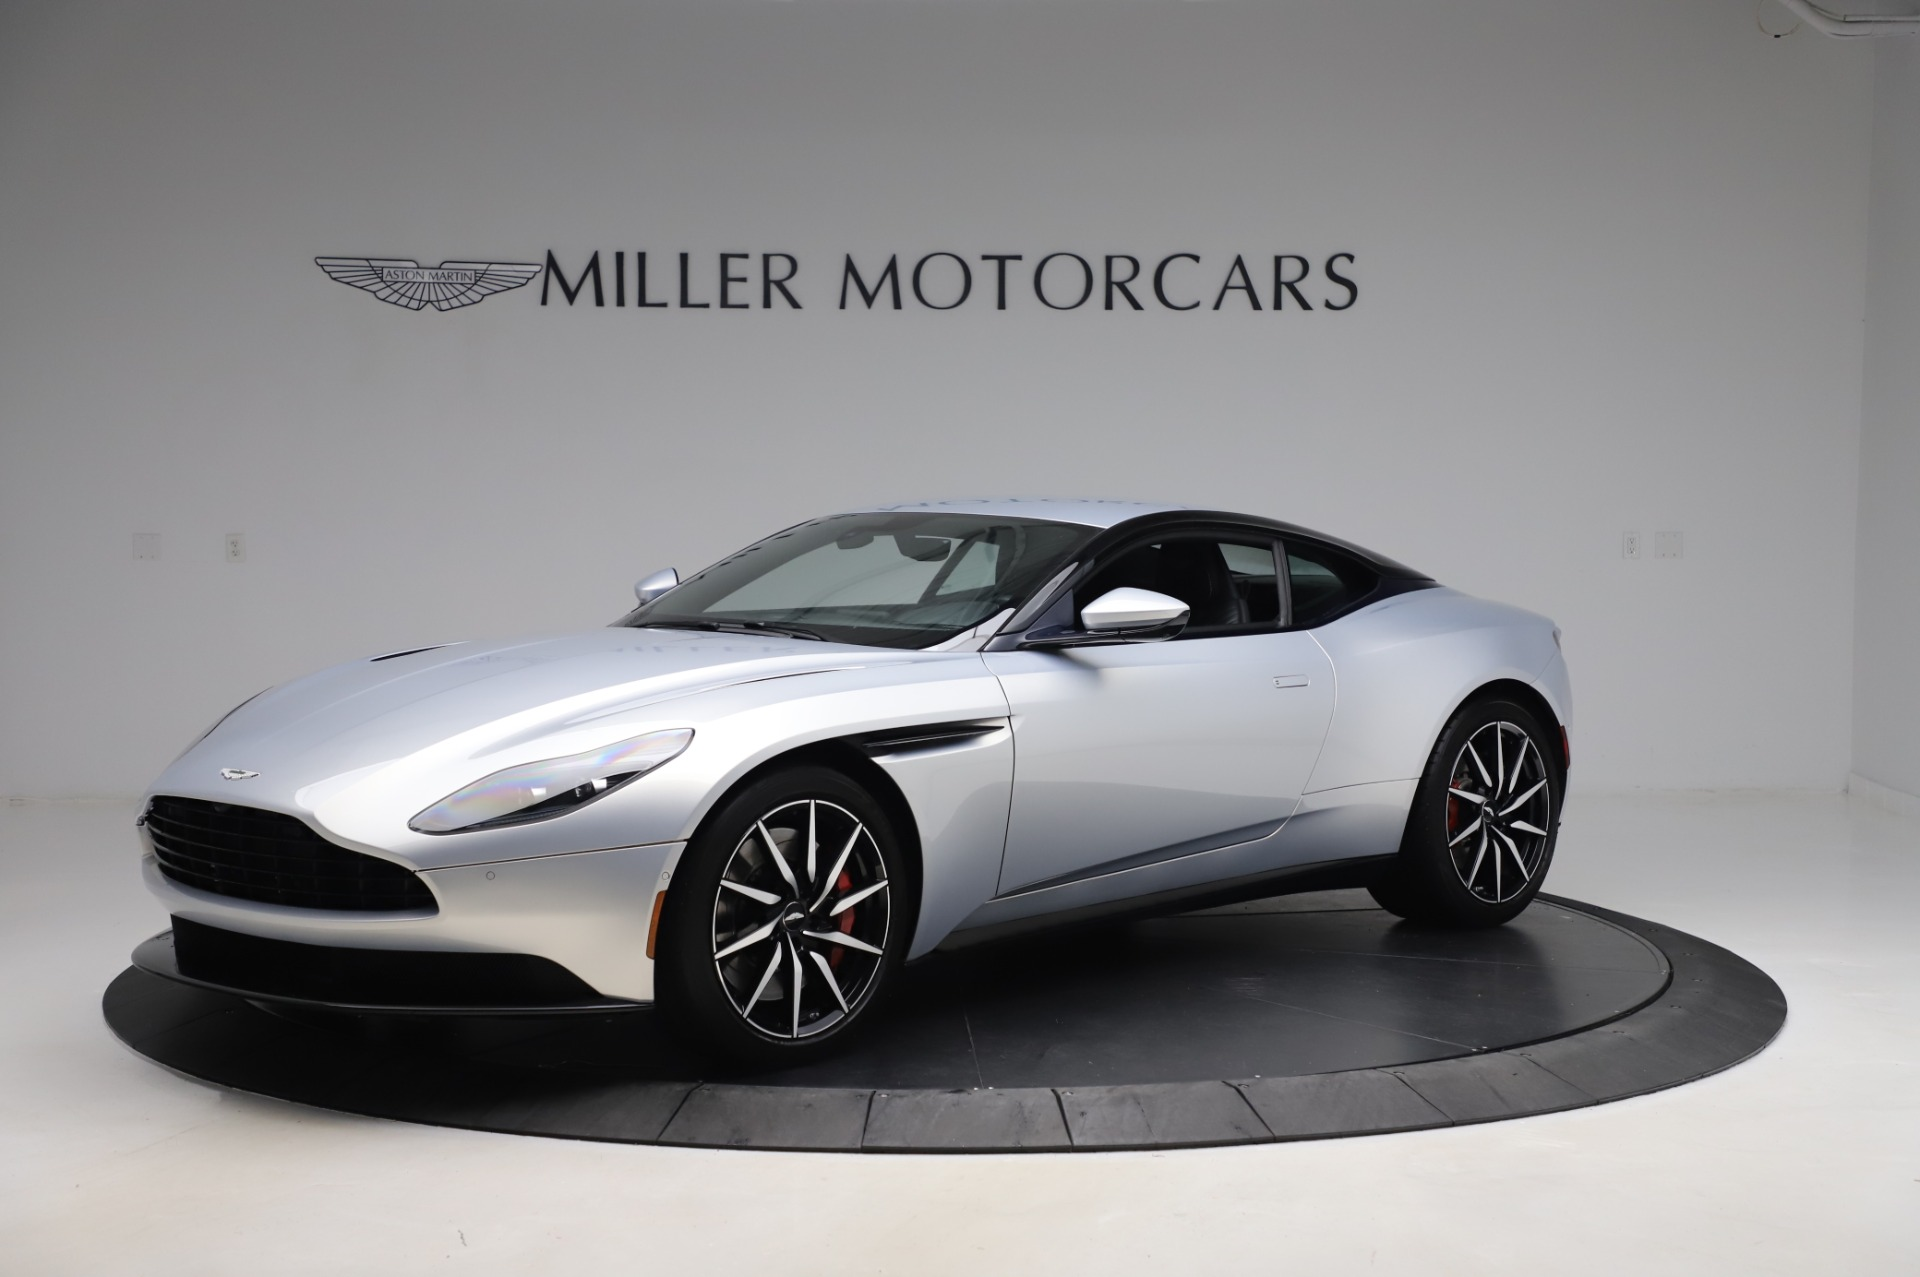 Used 2018 Aston Martin DB11 V8 Coupe for sale Sold at Bentley Greenwich in Greenwich CT 06830 1